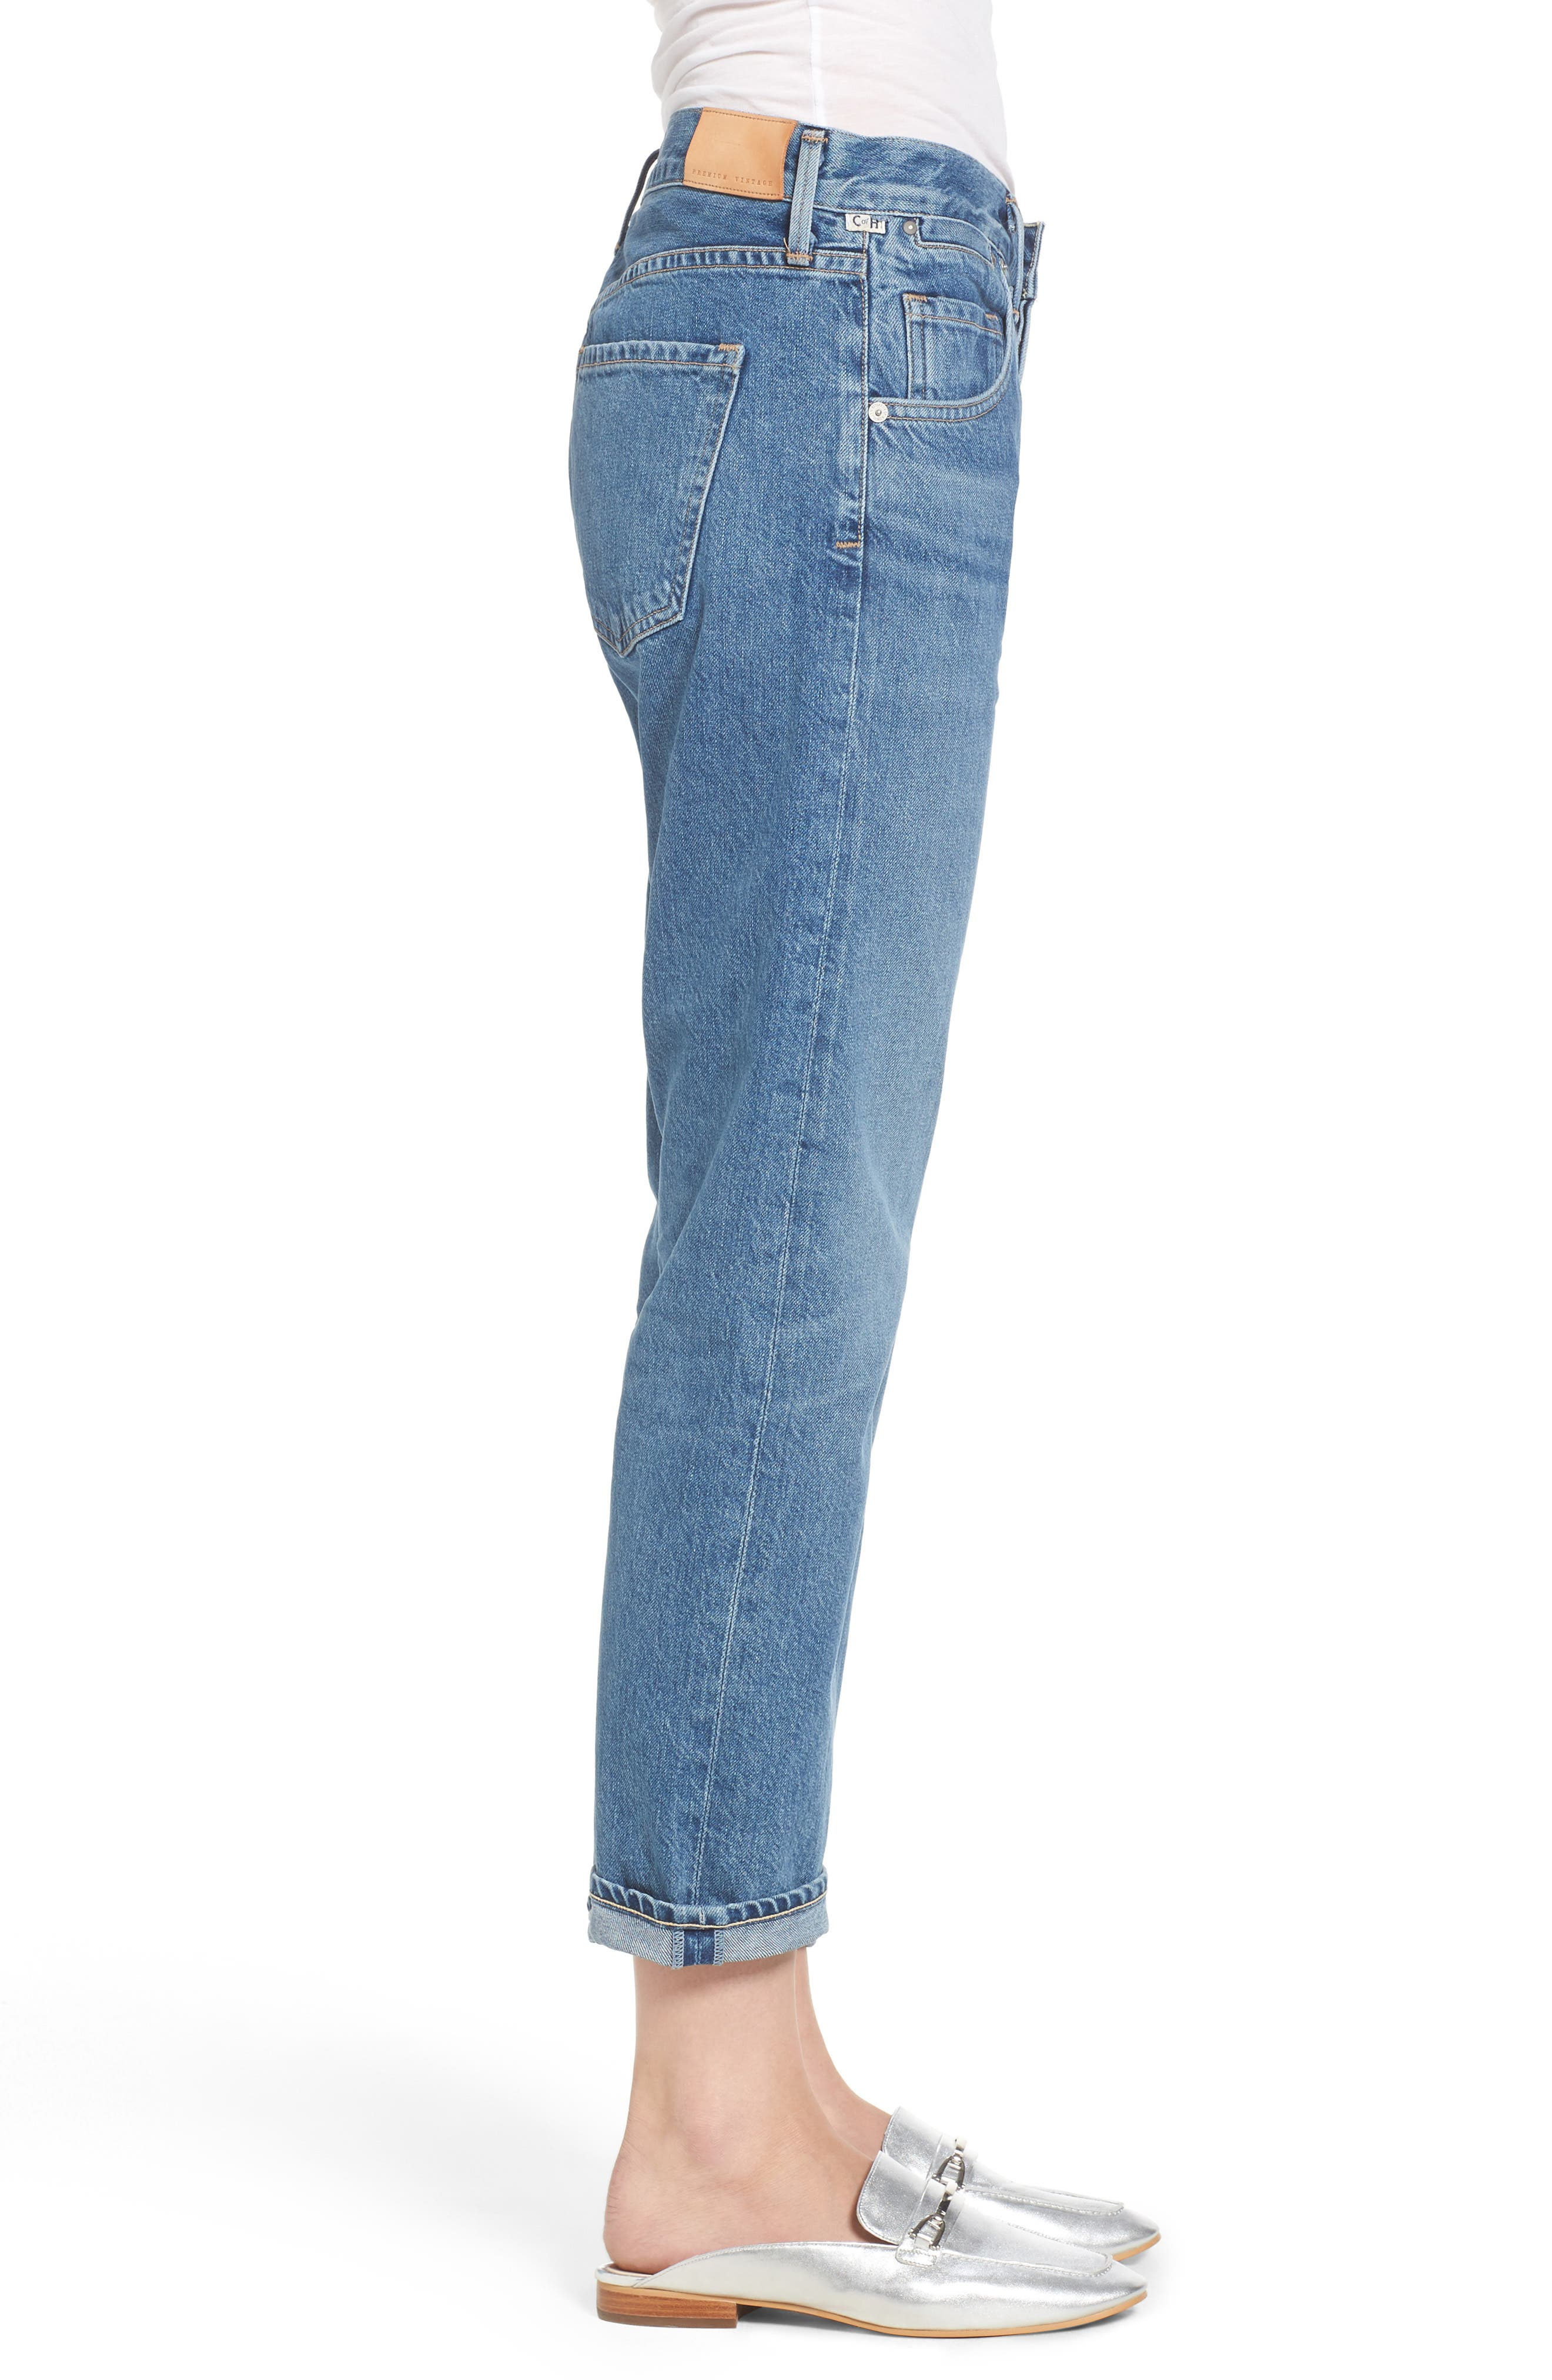 Emerson Slim Boyfriend Jeans,                             Alternate thumbnail 3, color,                             Dream On